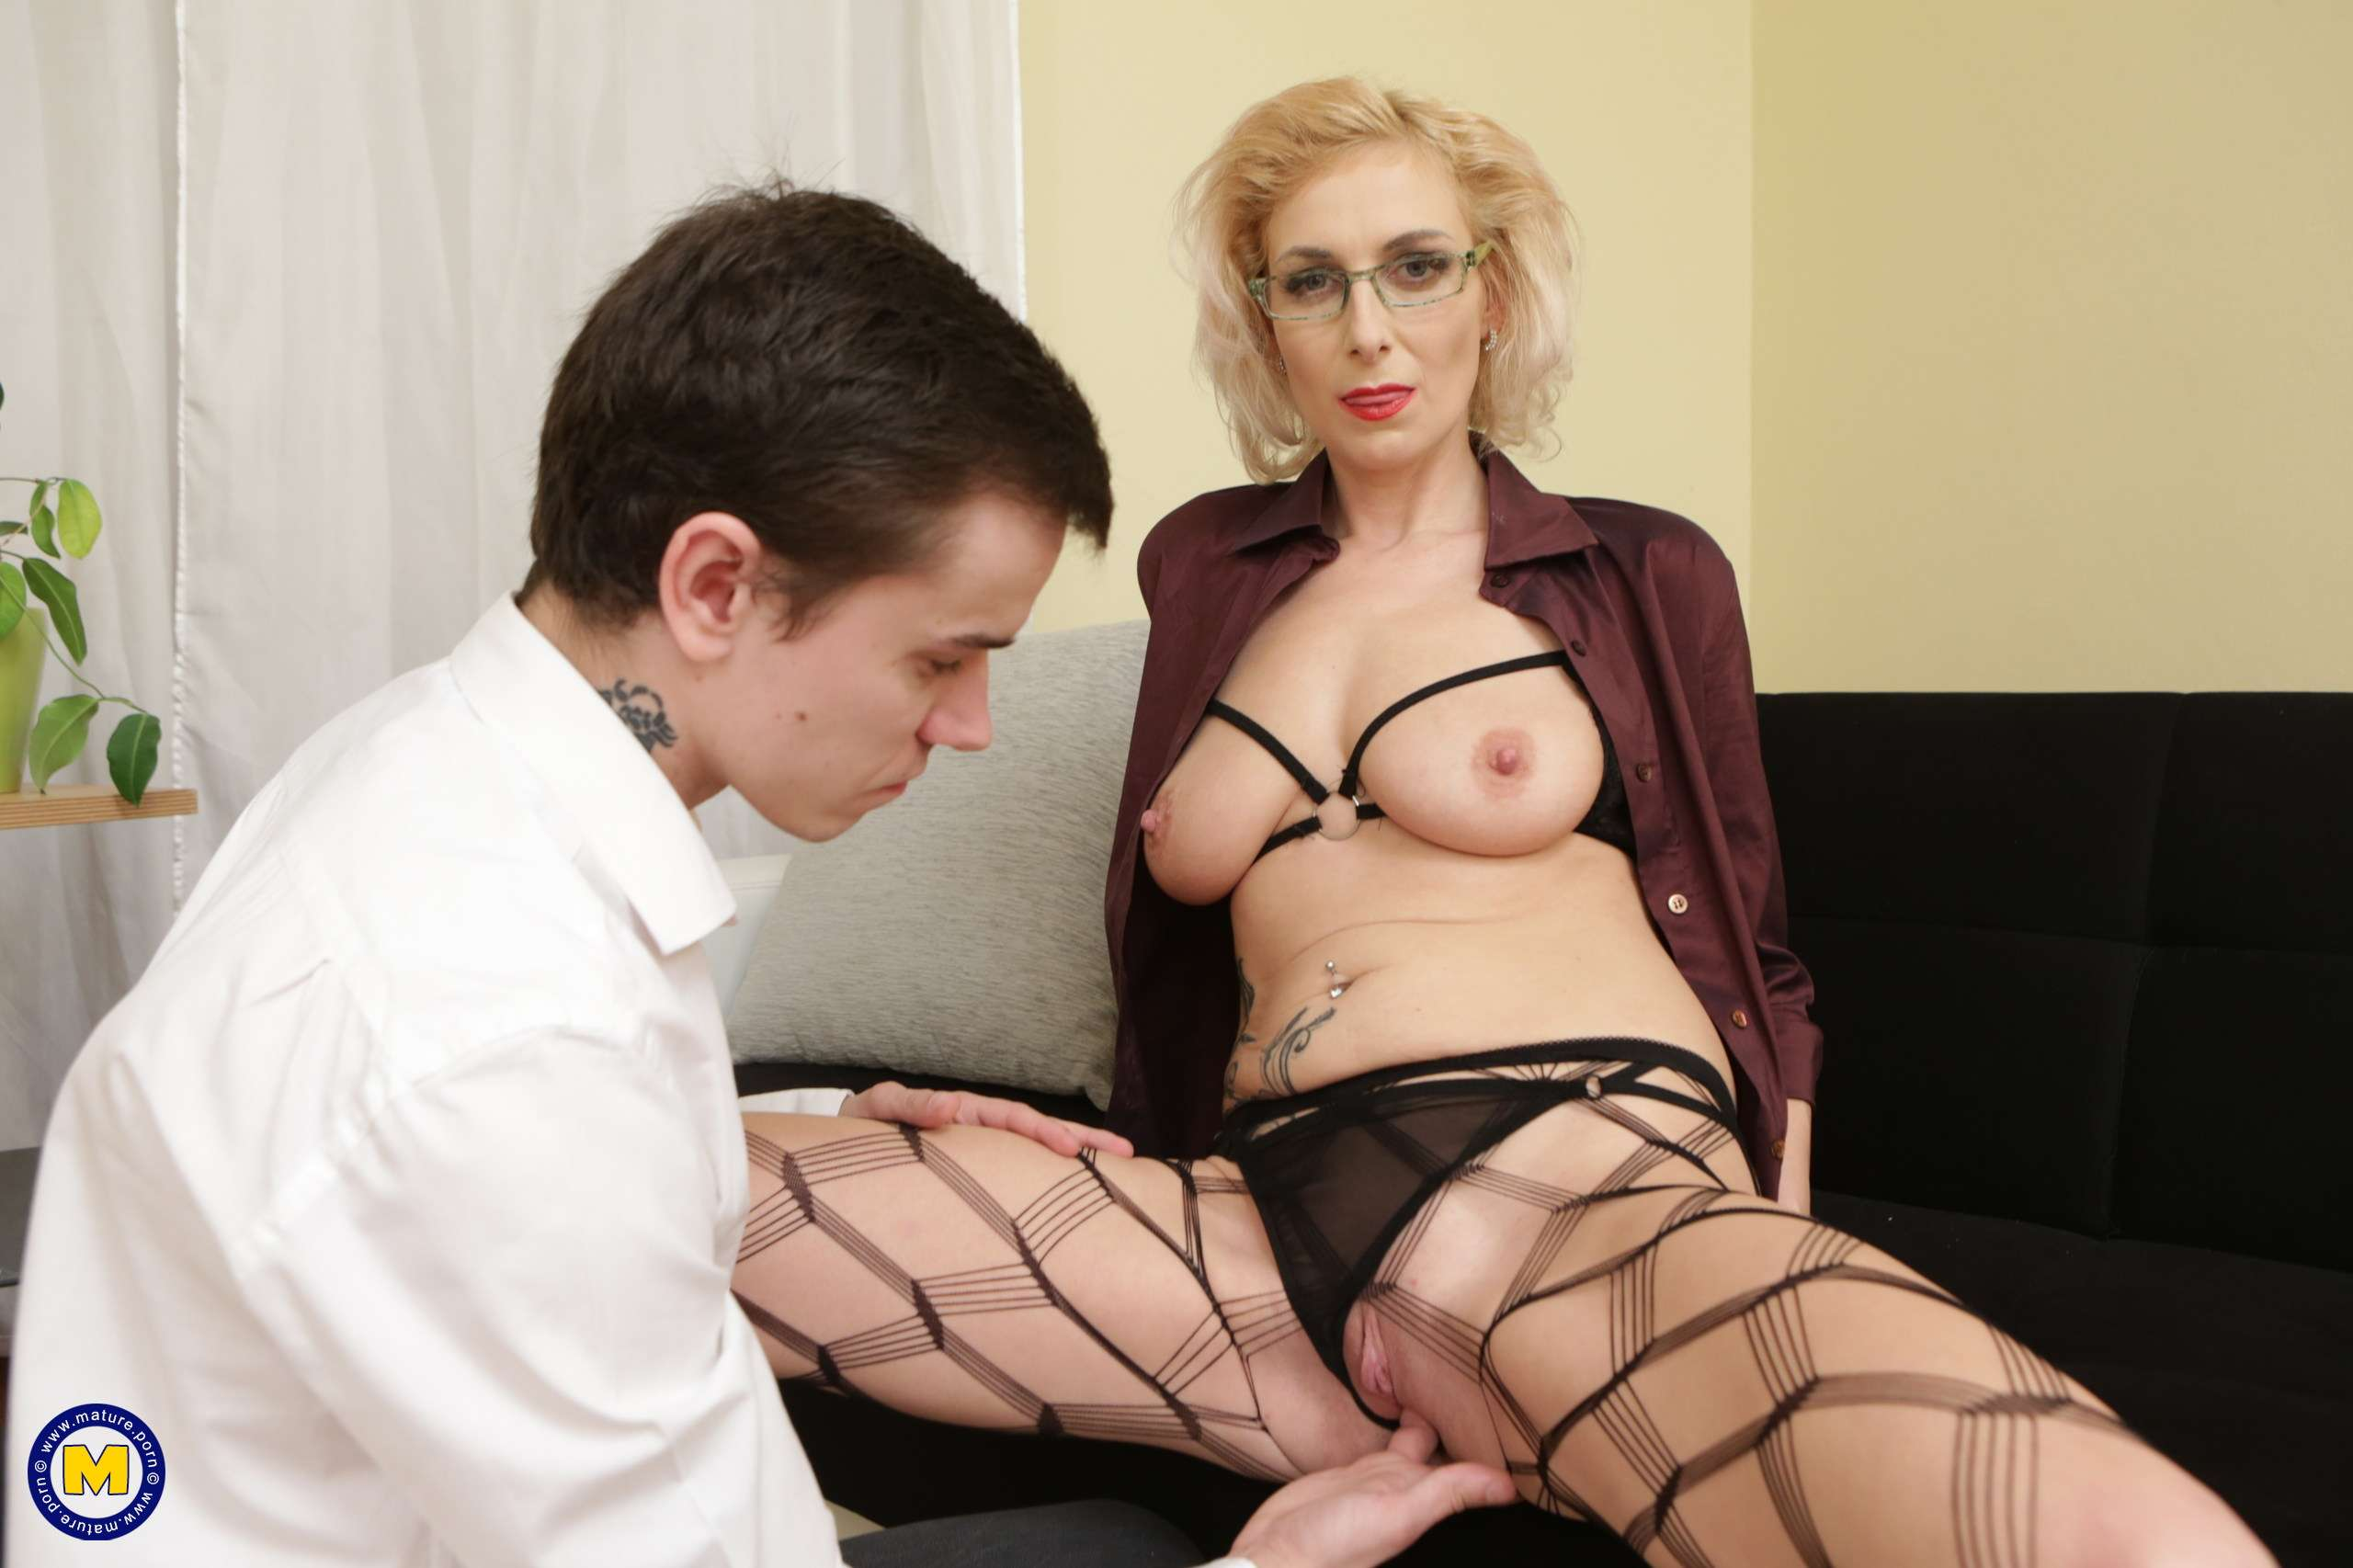 This naughty mature lady seduces her to boy